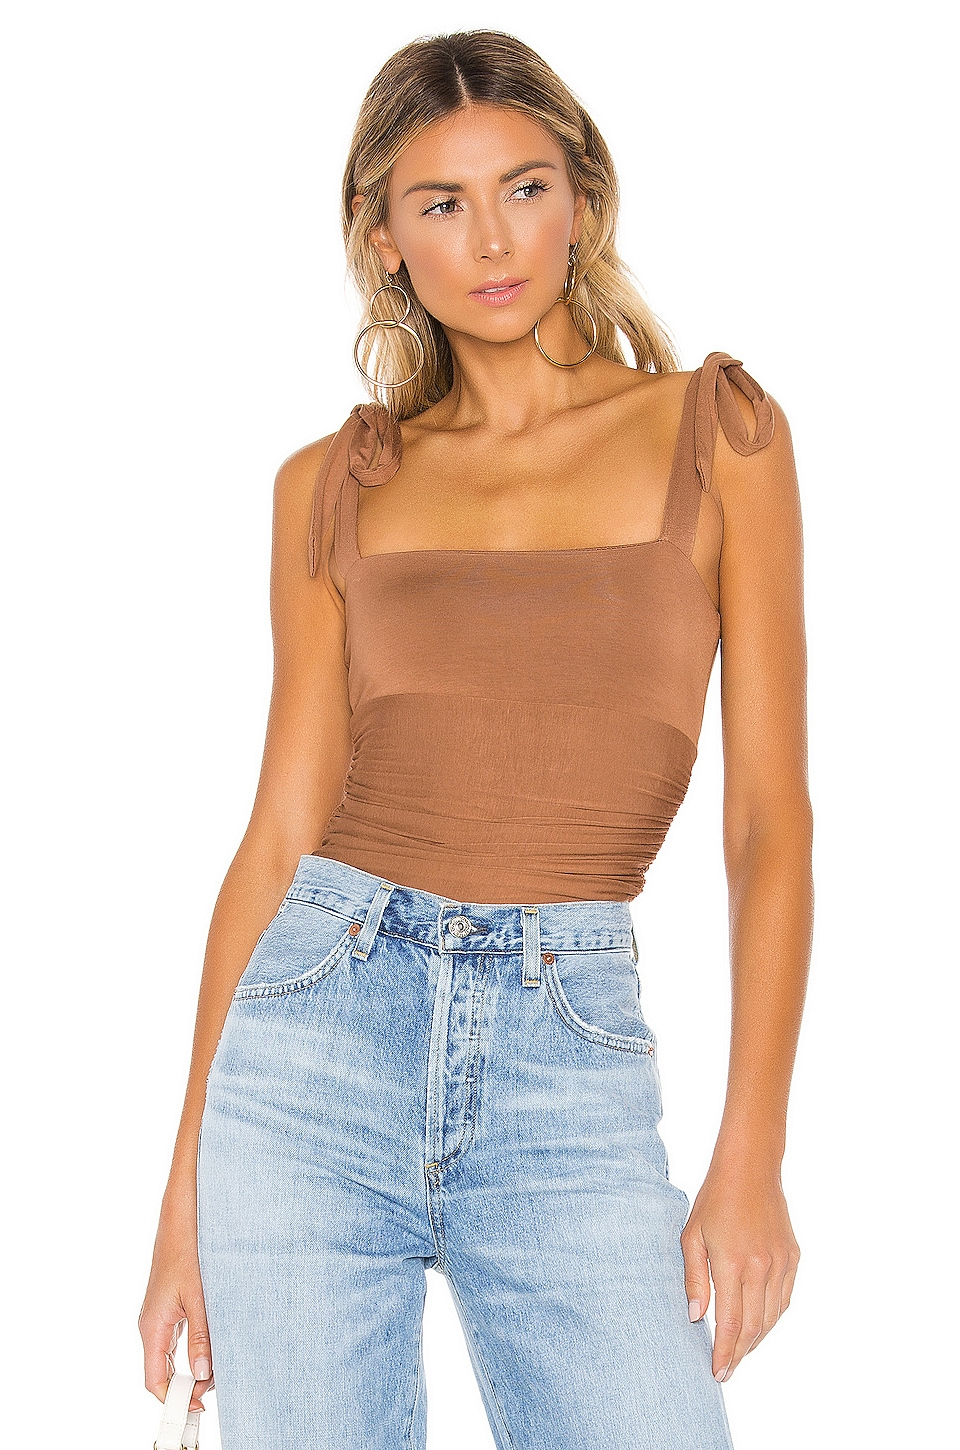 MAJORELLE Lauren Bodysuit in Brown Spice